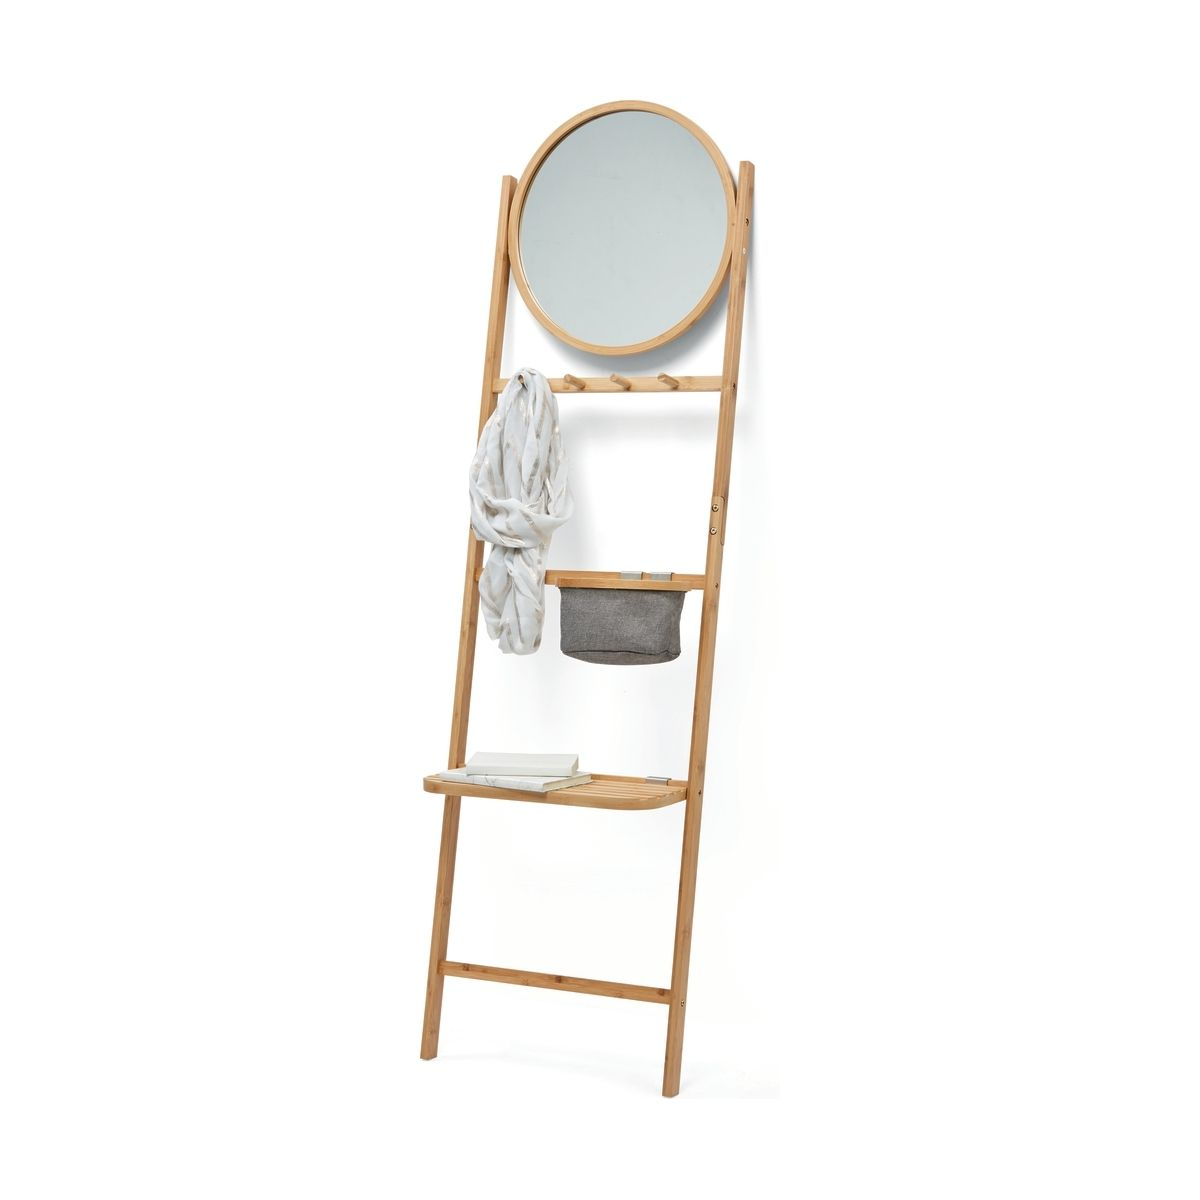 Leaning Storage Mirror With Bamboo Frame Kmart Storage Mirror Bamboo Frame Living Room Storage